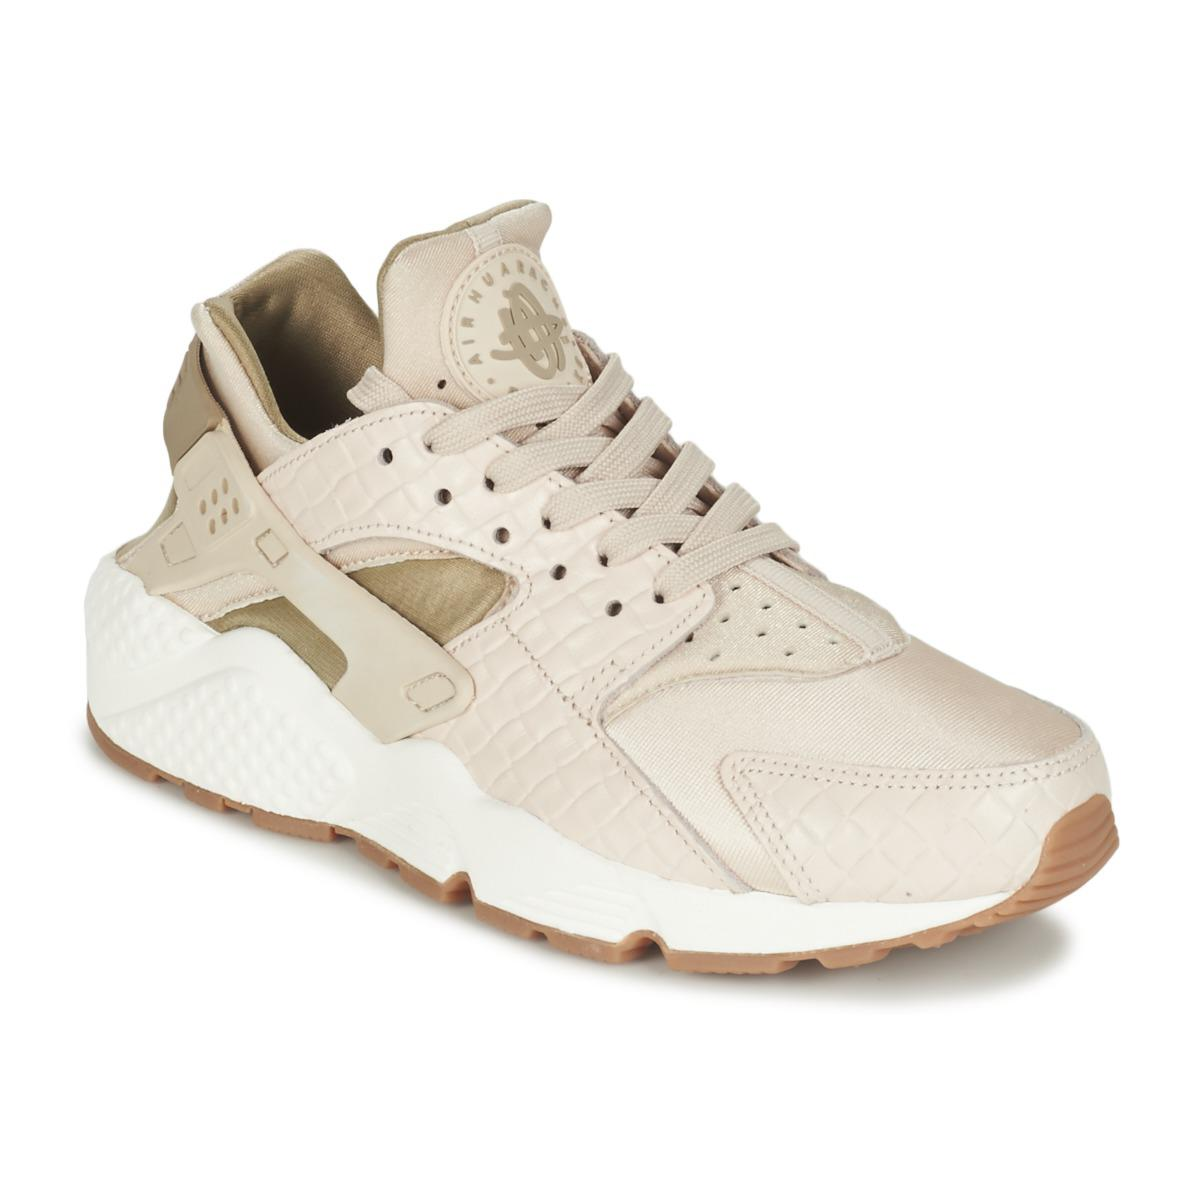 0bdaff4be43 Nike Air Huarache Run Premium W Women s Shoes (trainers) In Beige in ...